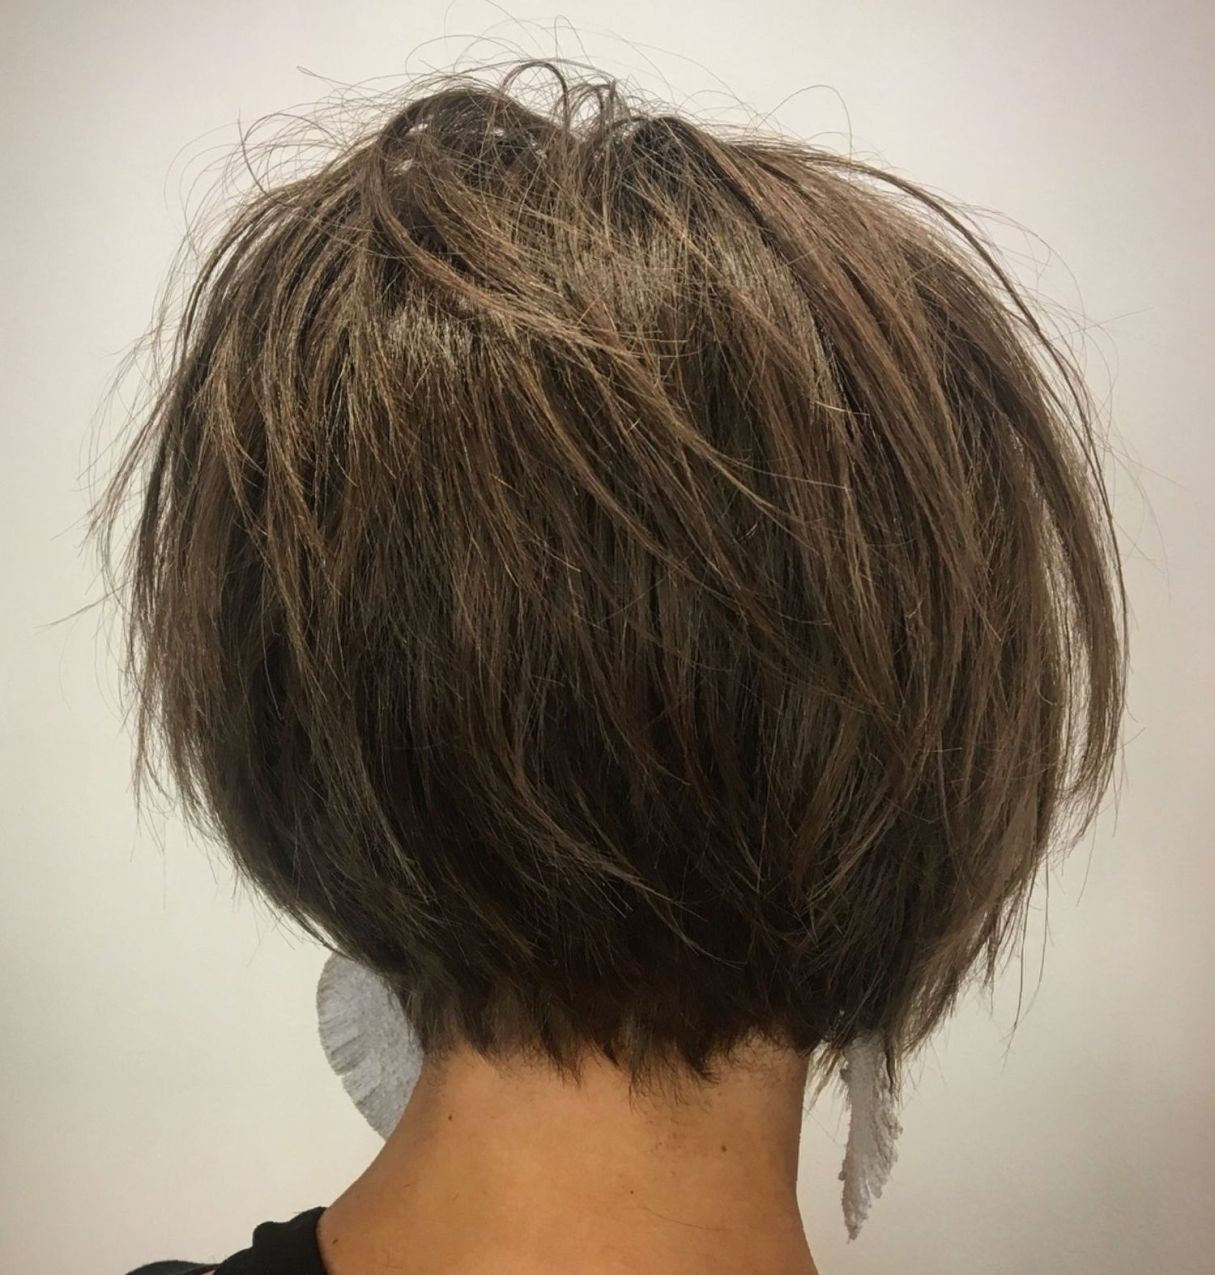 43+ Choppy short hairstyles for thick hair inspirations